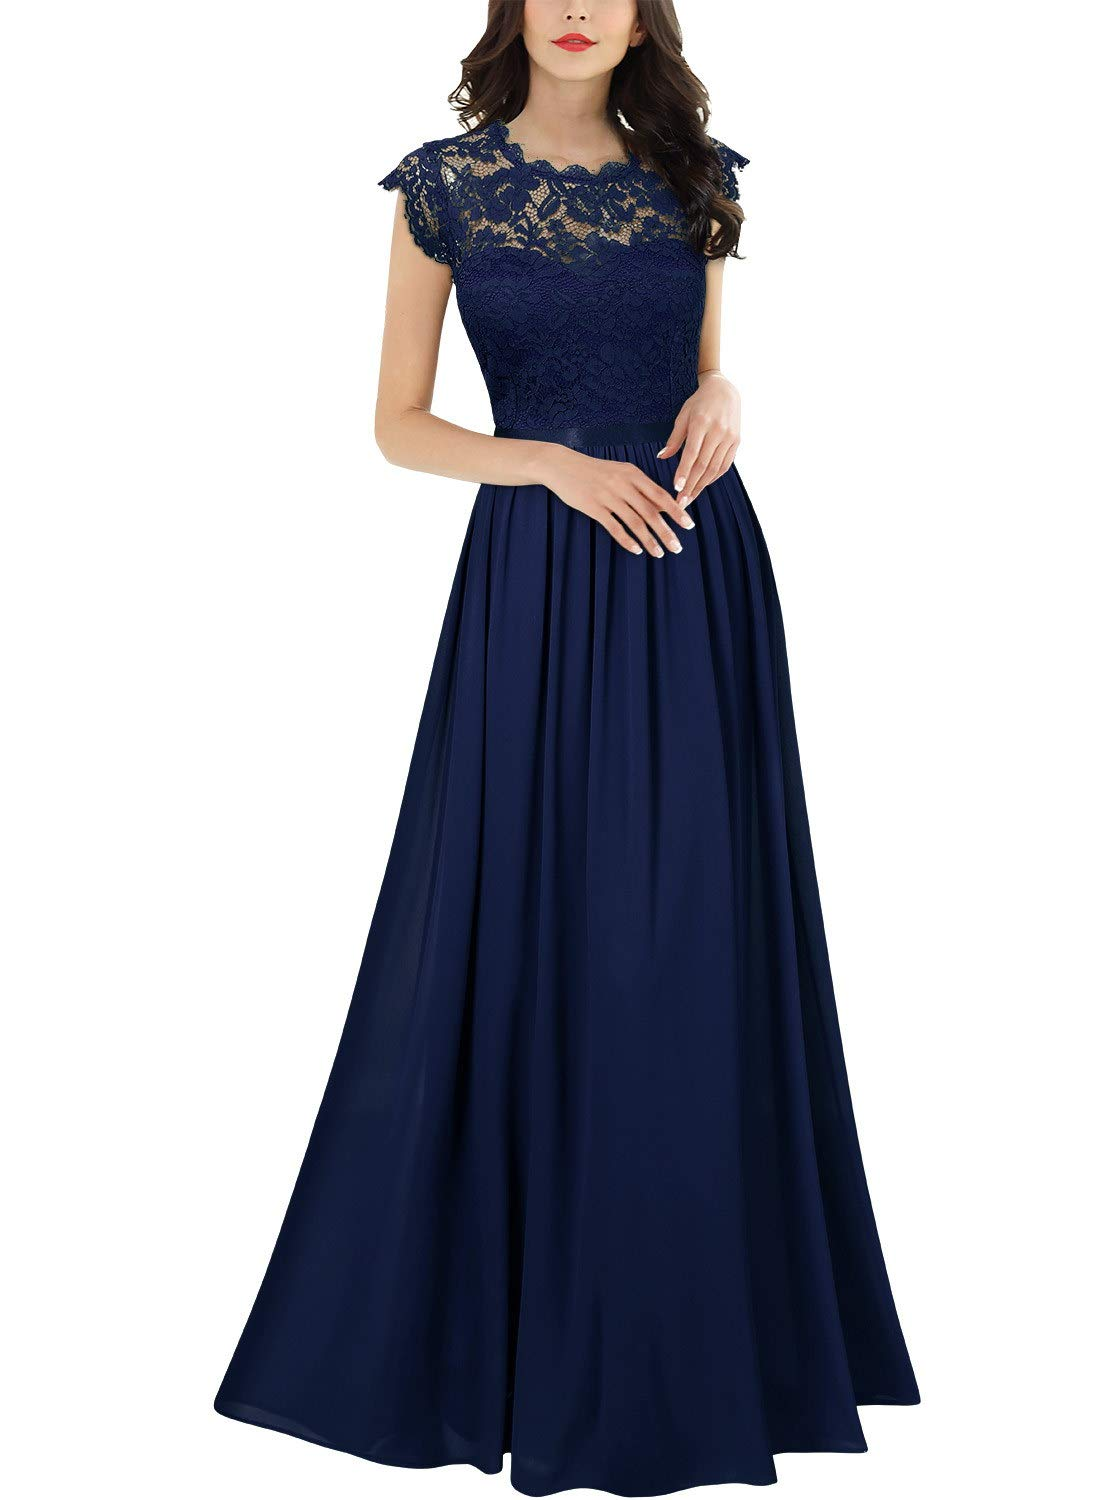 Party Dresses - Women's Formal Floral Lace Evening Party Maxi Dress